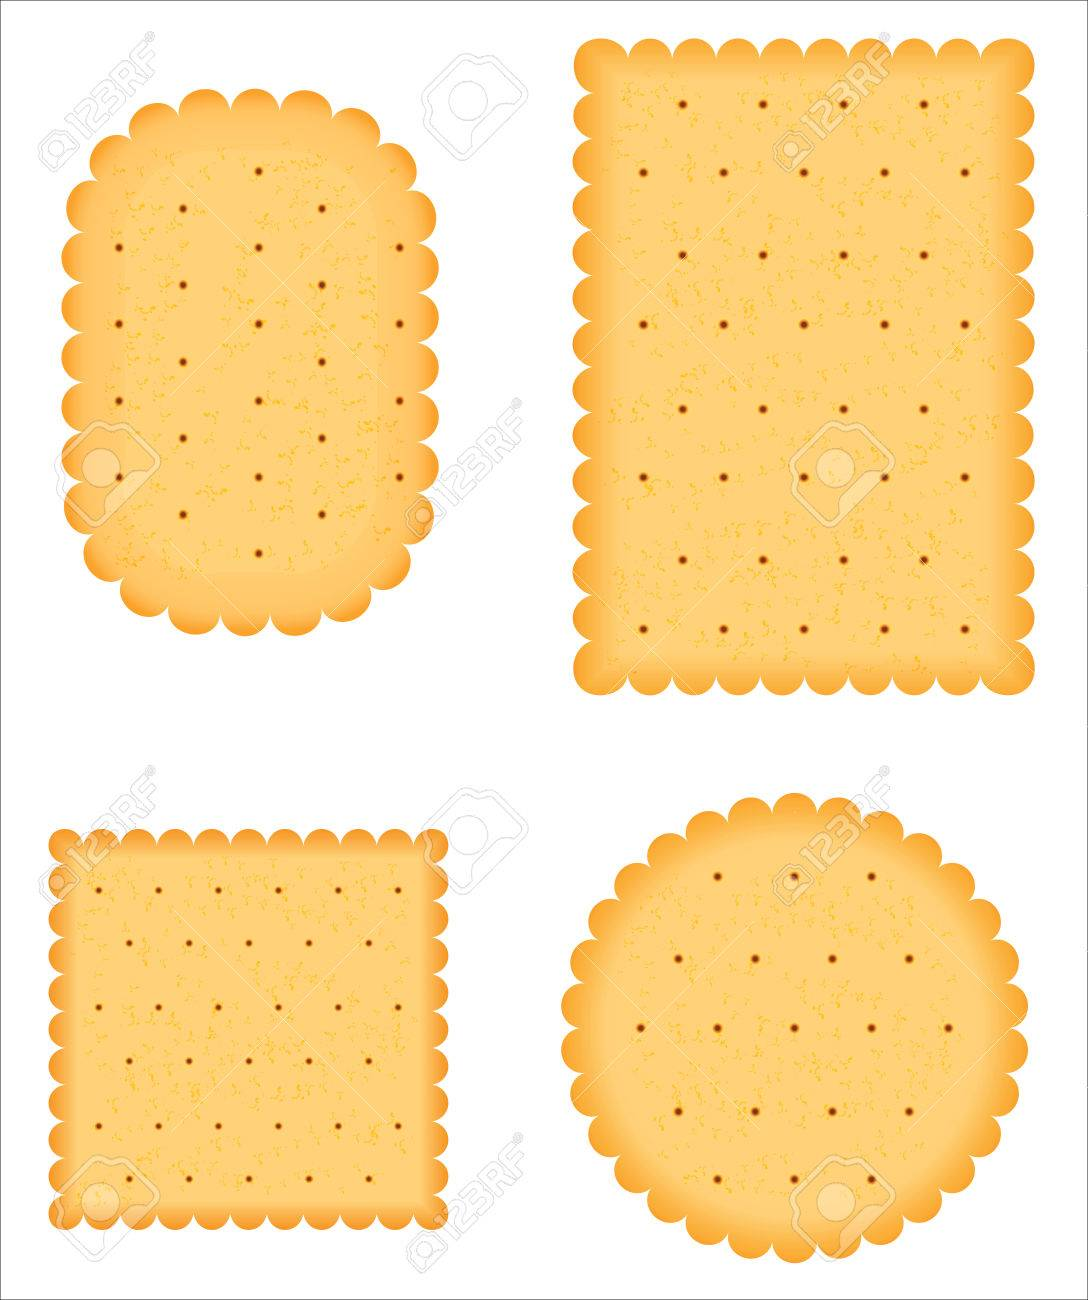 a biscuit vector royalty free cliparts vectors and stock illustration image 68864812 a biscuit vector